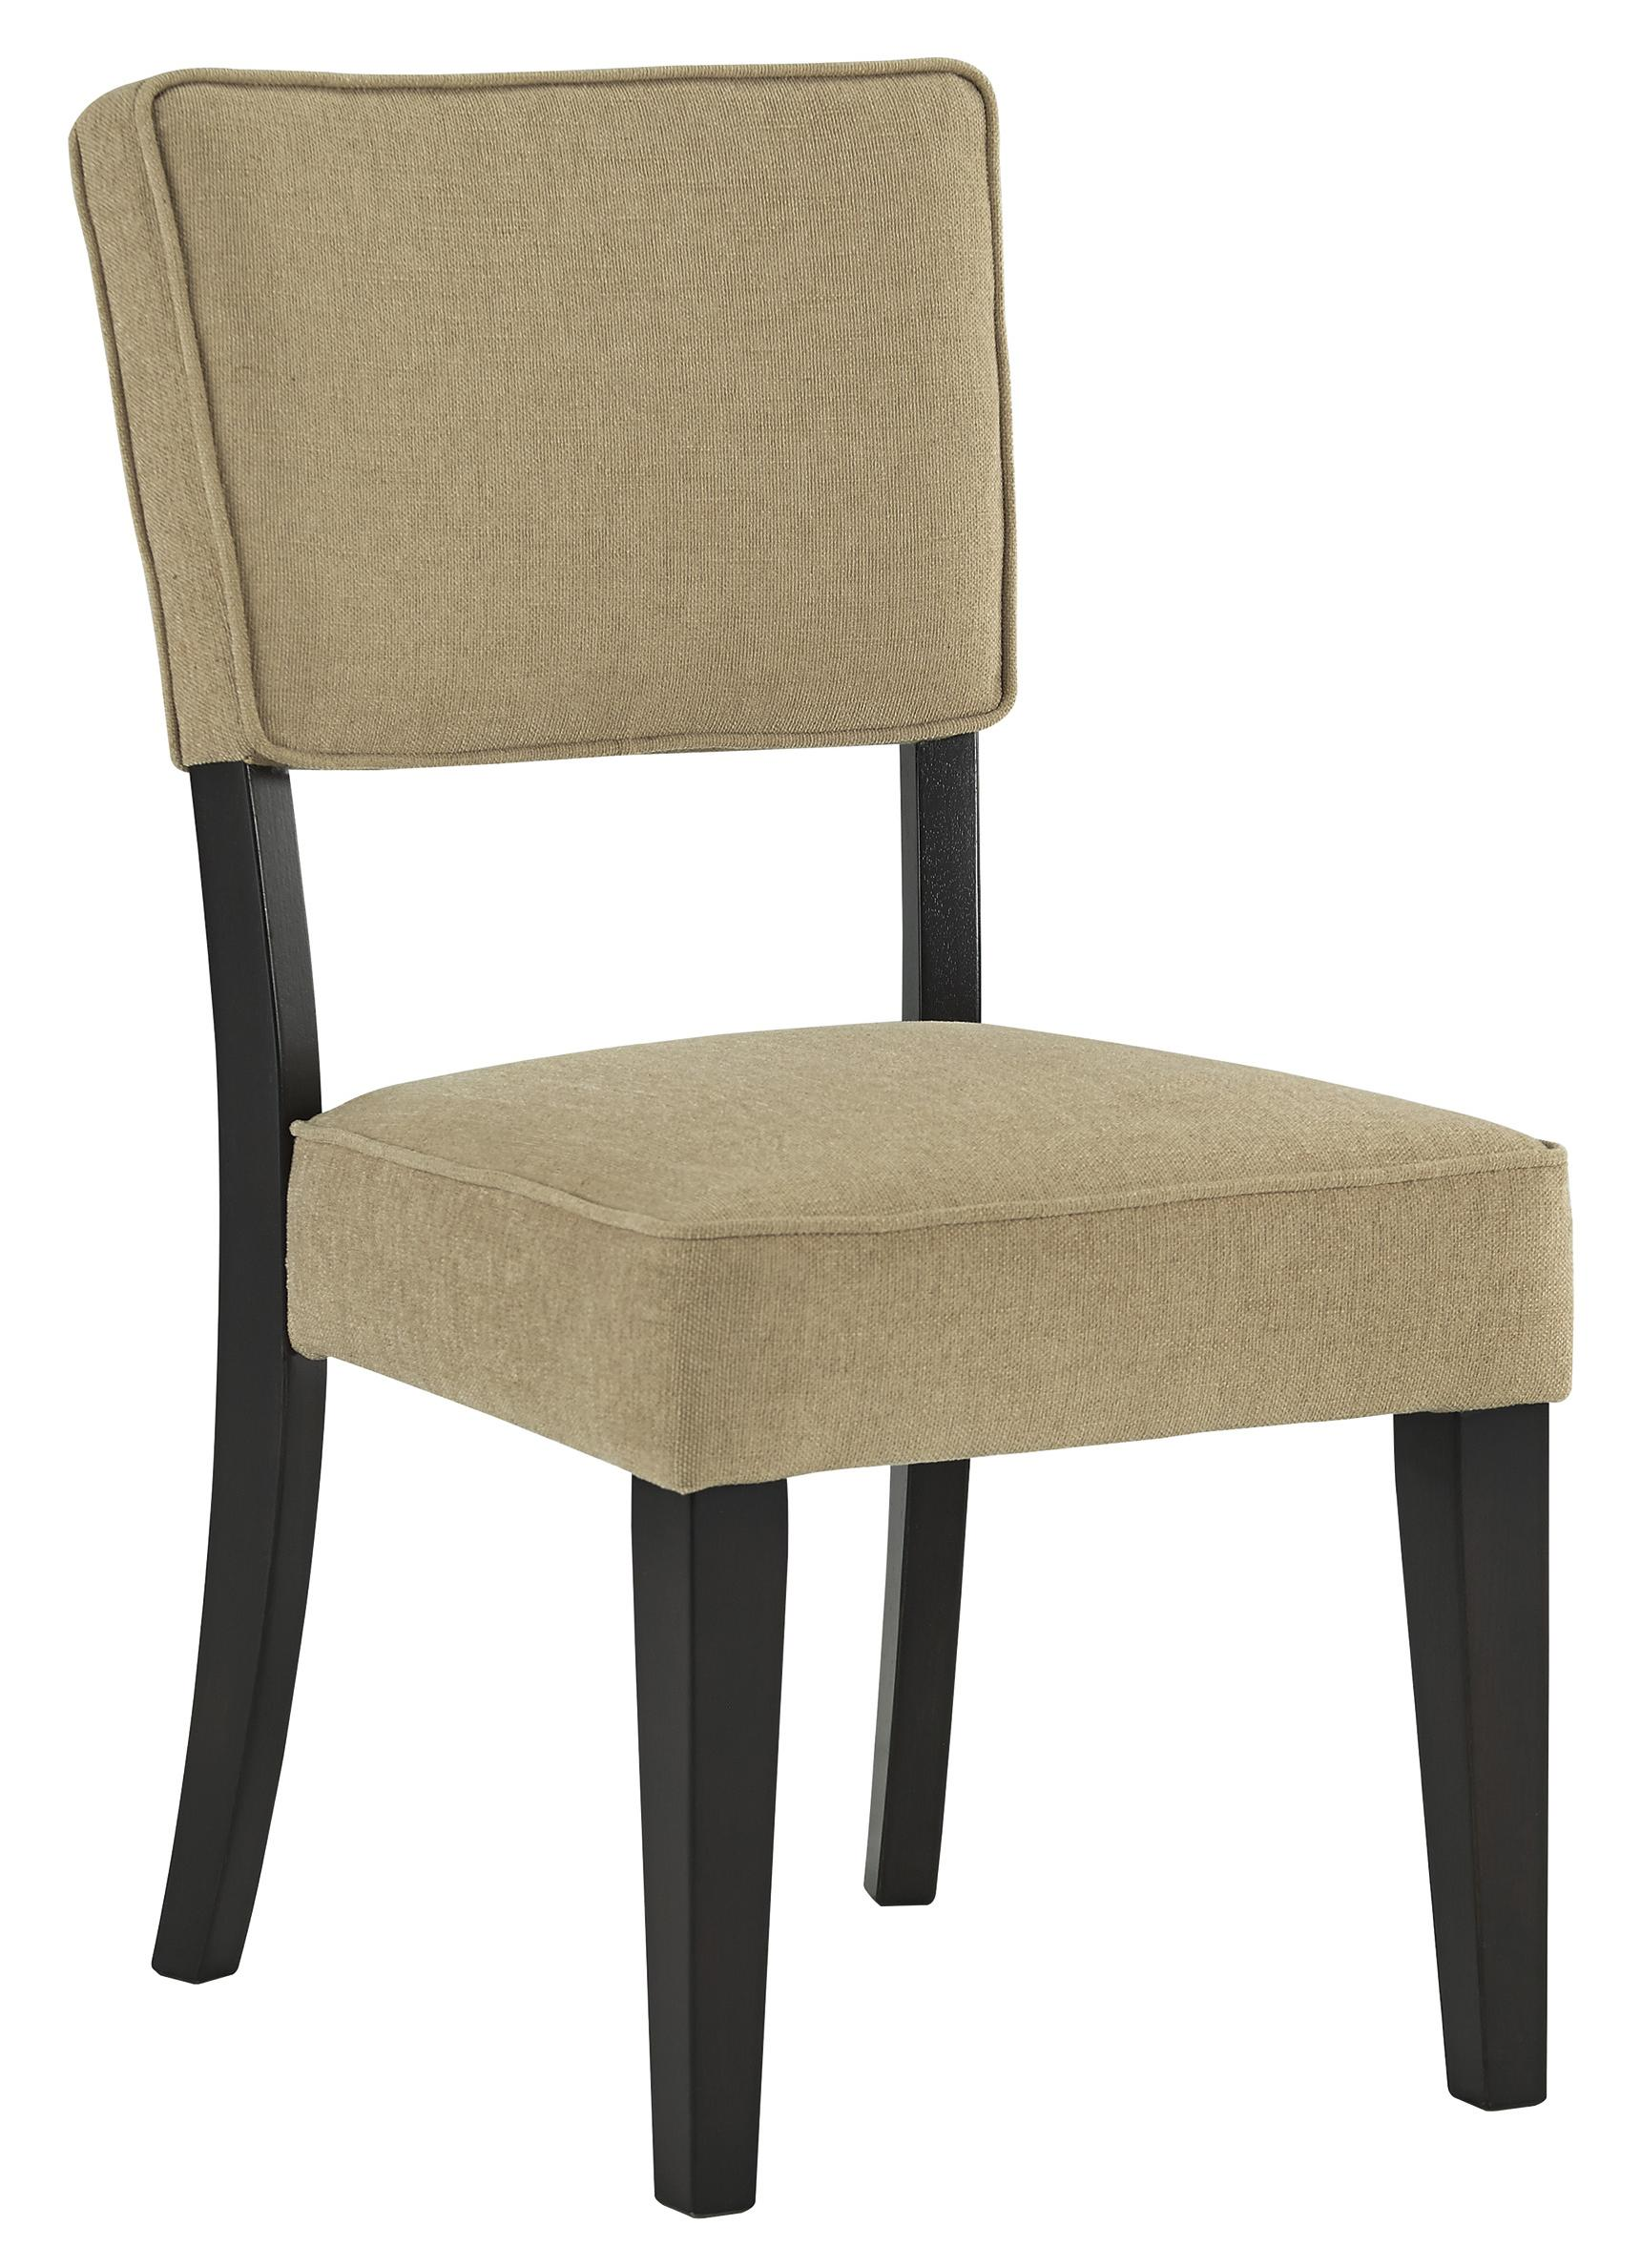 Signature Design by Ashley Gavelston Dining Upholstered Side Chair - Item Number: D532-01